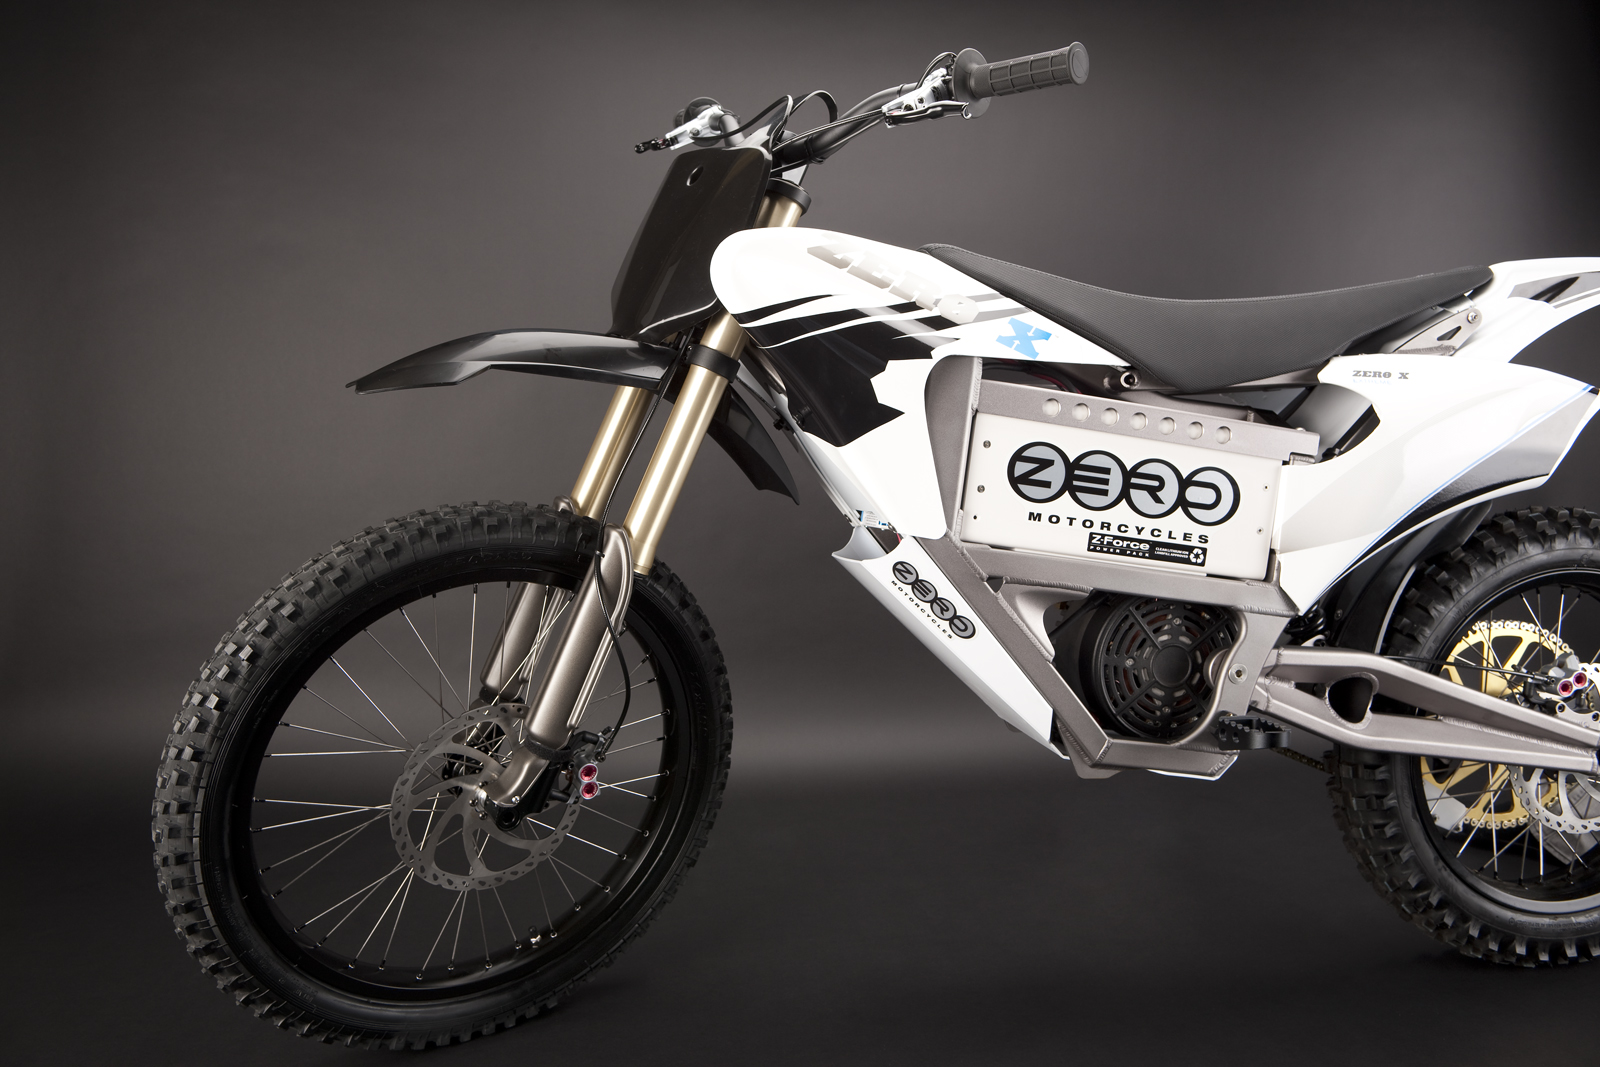 '.2010 Zero X Electric Motorcycle: Handlebars.'